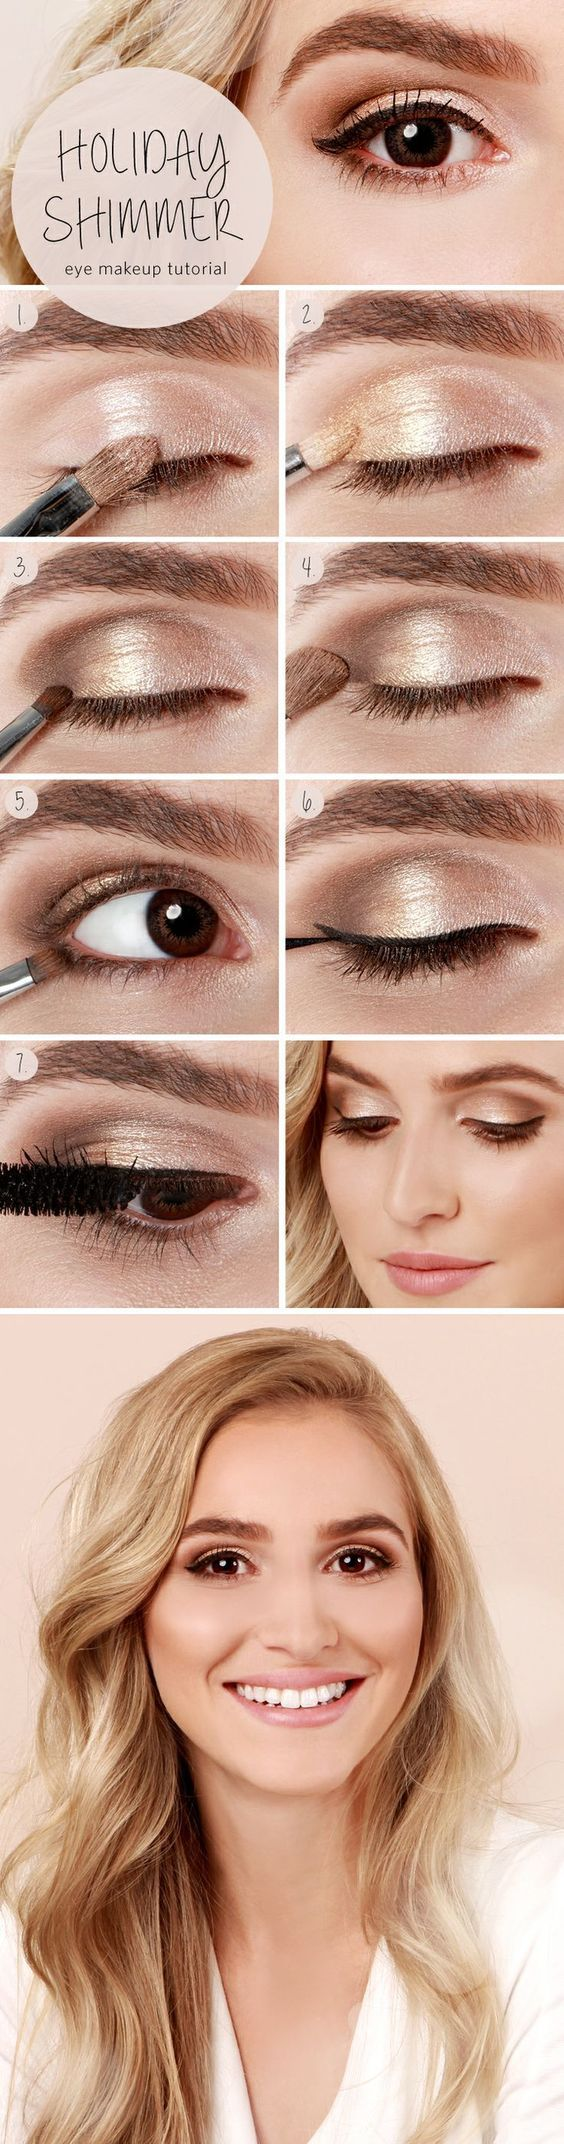 Makeup Tips And Tricks How To Apply Hide Wrinkles Fine Lines